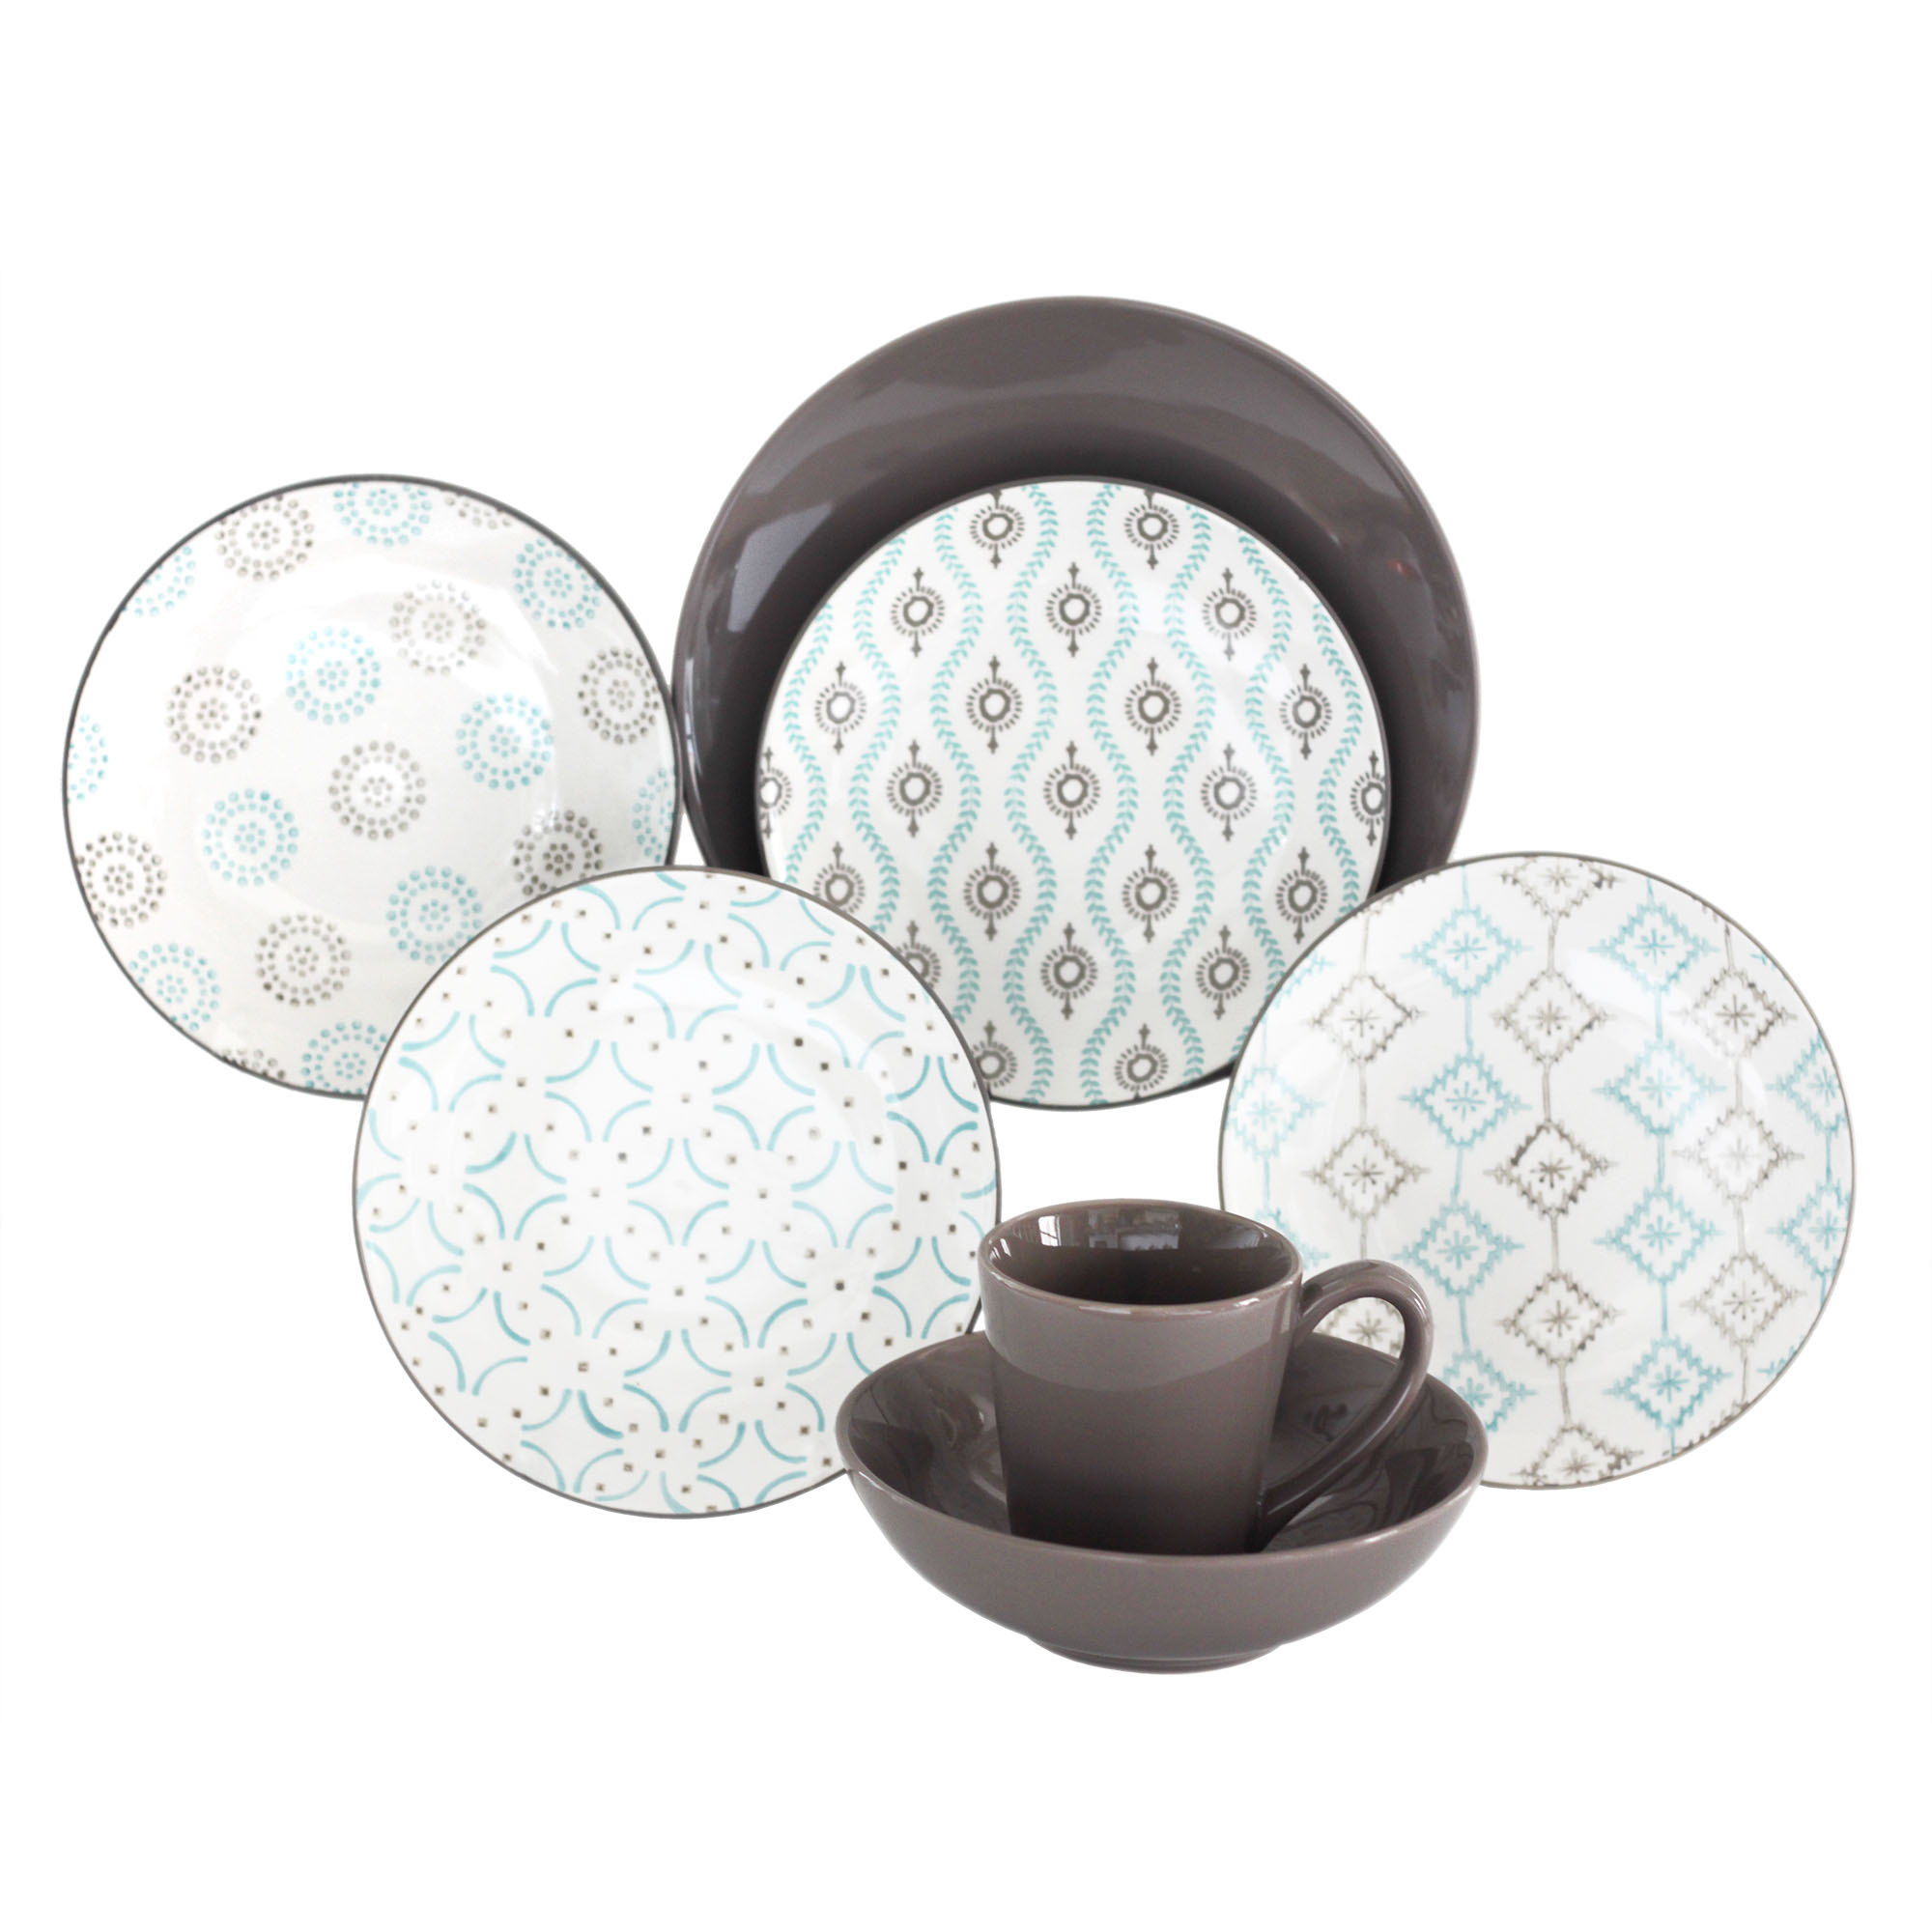 Aura Patterned 16-piece Dinnerware Set by Baum Brothers Imports